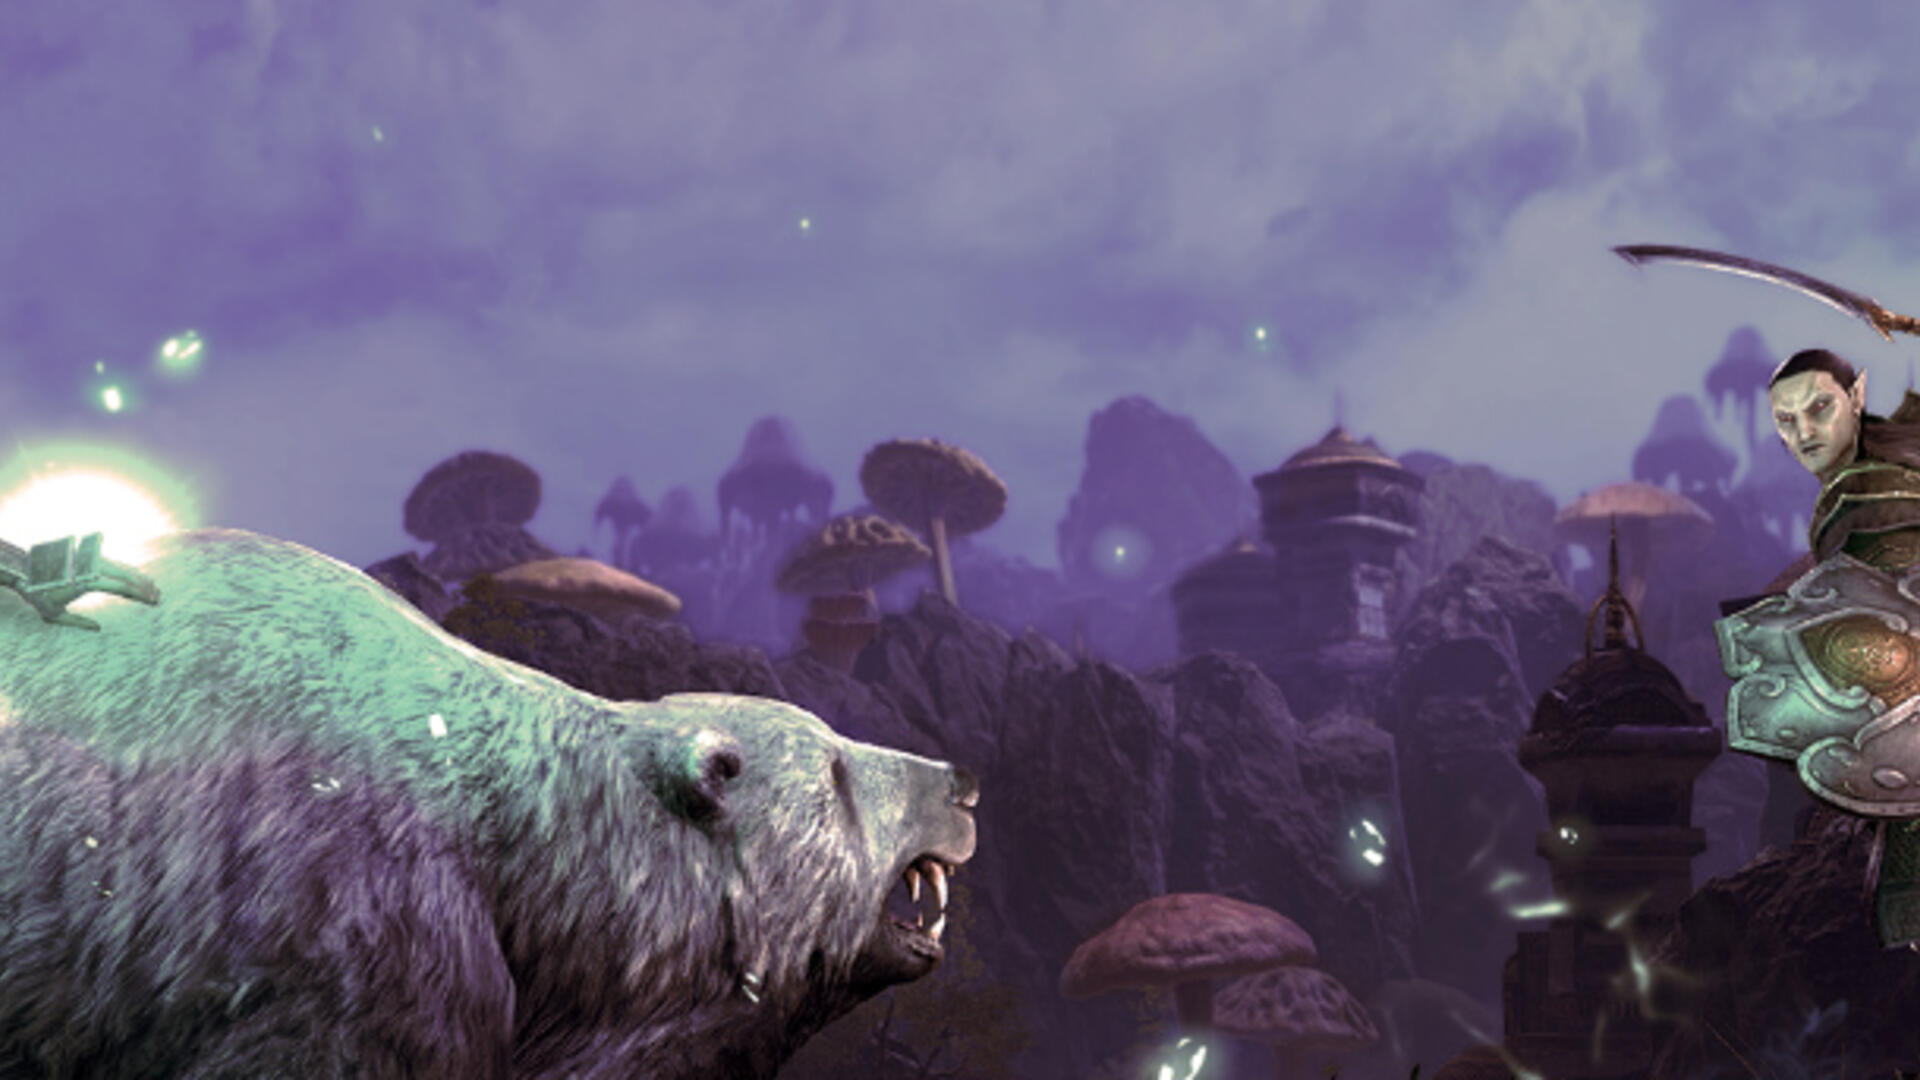 Elder Scrolls Online Morrowind Review: Nostalgia, Just Like You Remember It